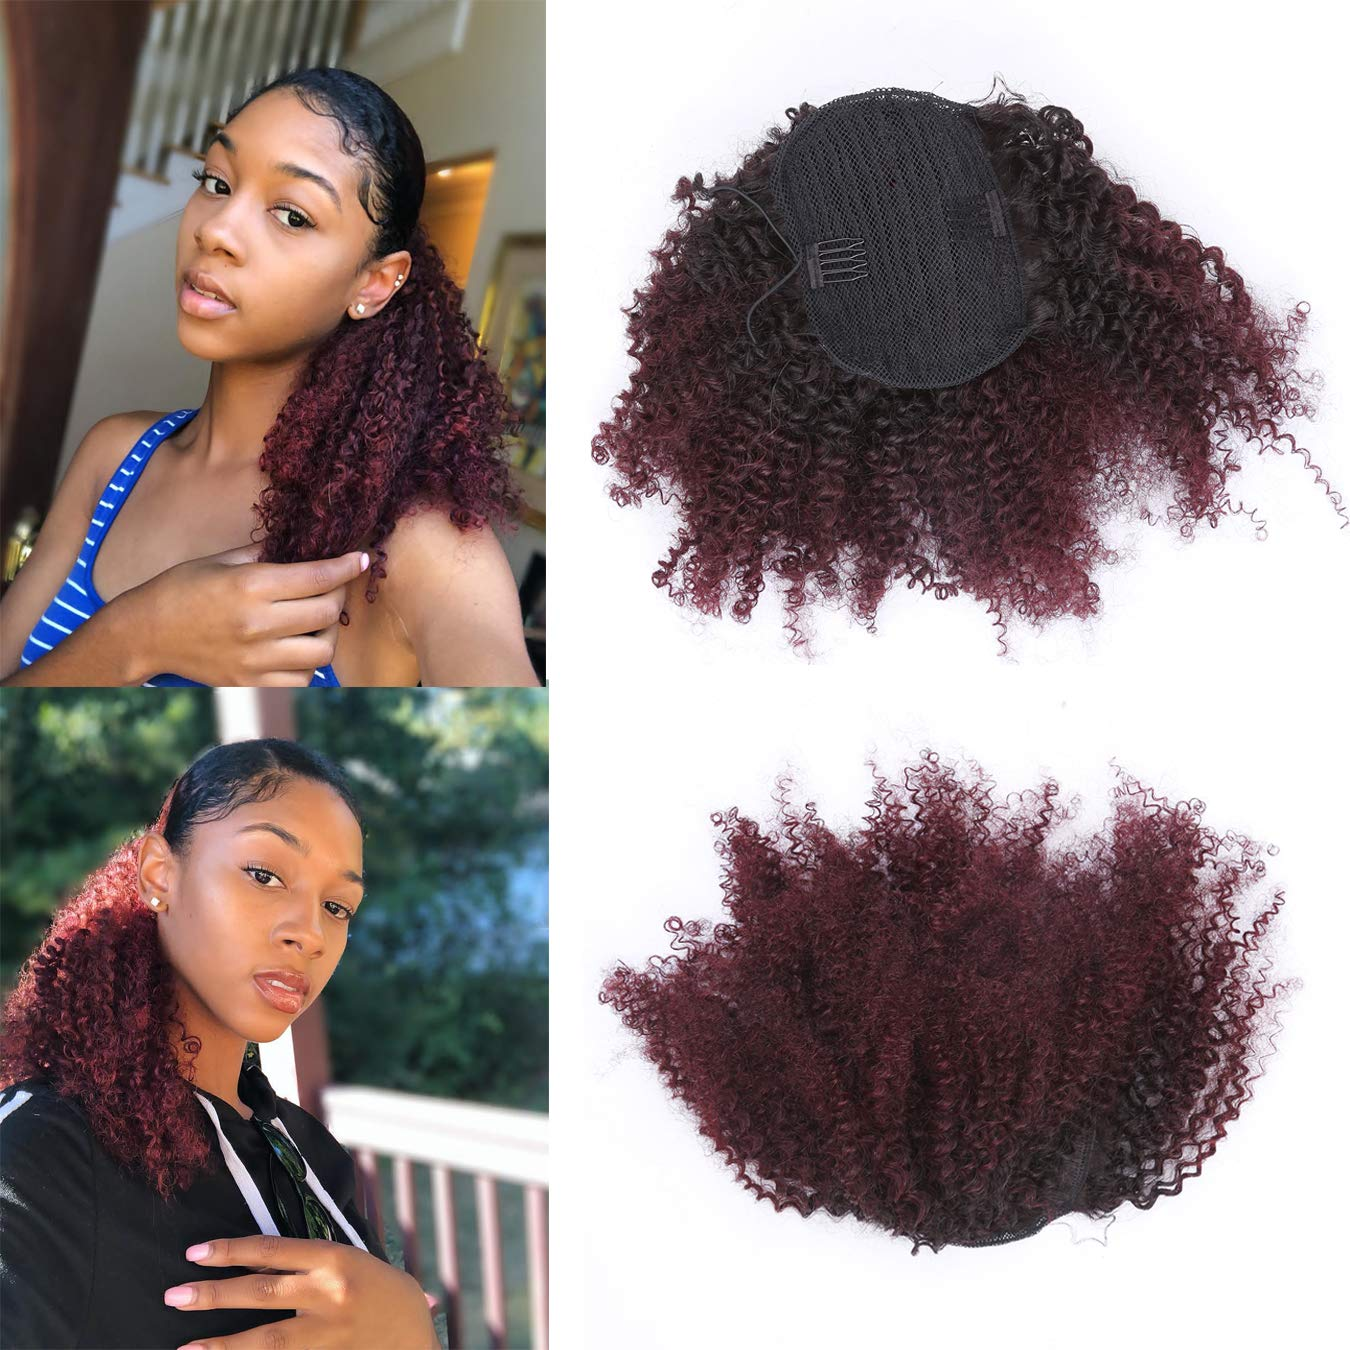 Curly Ponytail Hair Piece 4c 4b Afro Ponytail For Natural Hair Curly Drawstring Ponytail For Black Women 8a Grade Afro Kinky Curly Hair Piece Clip In